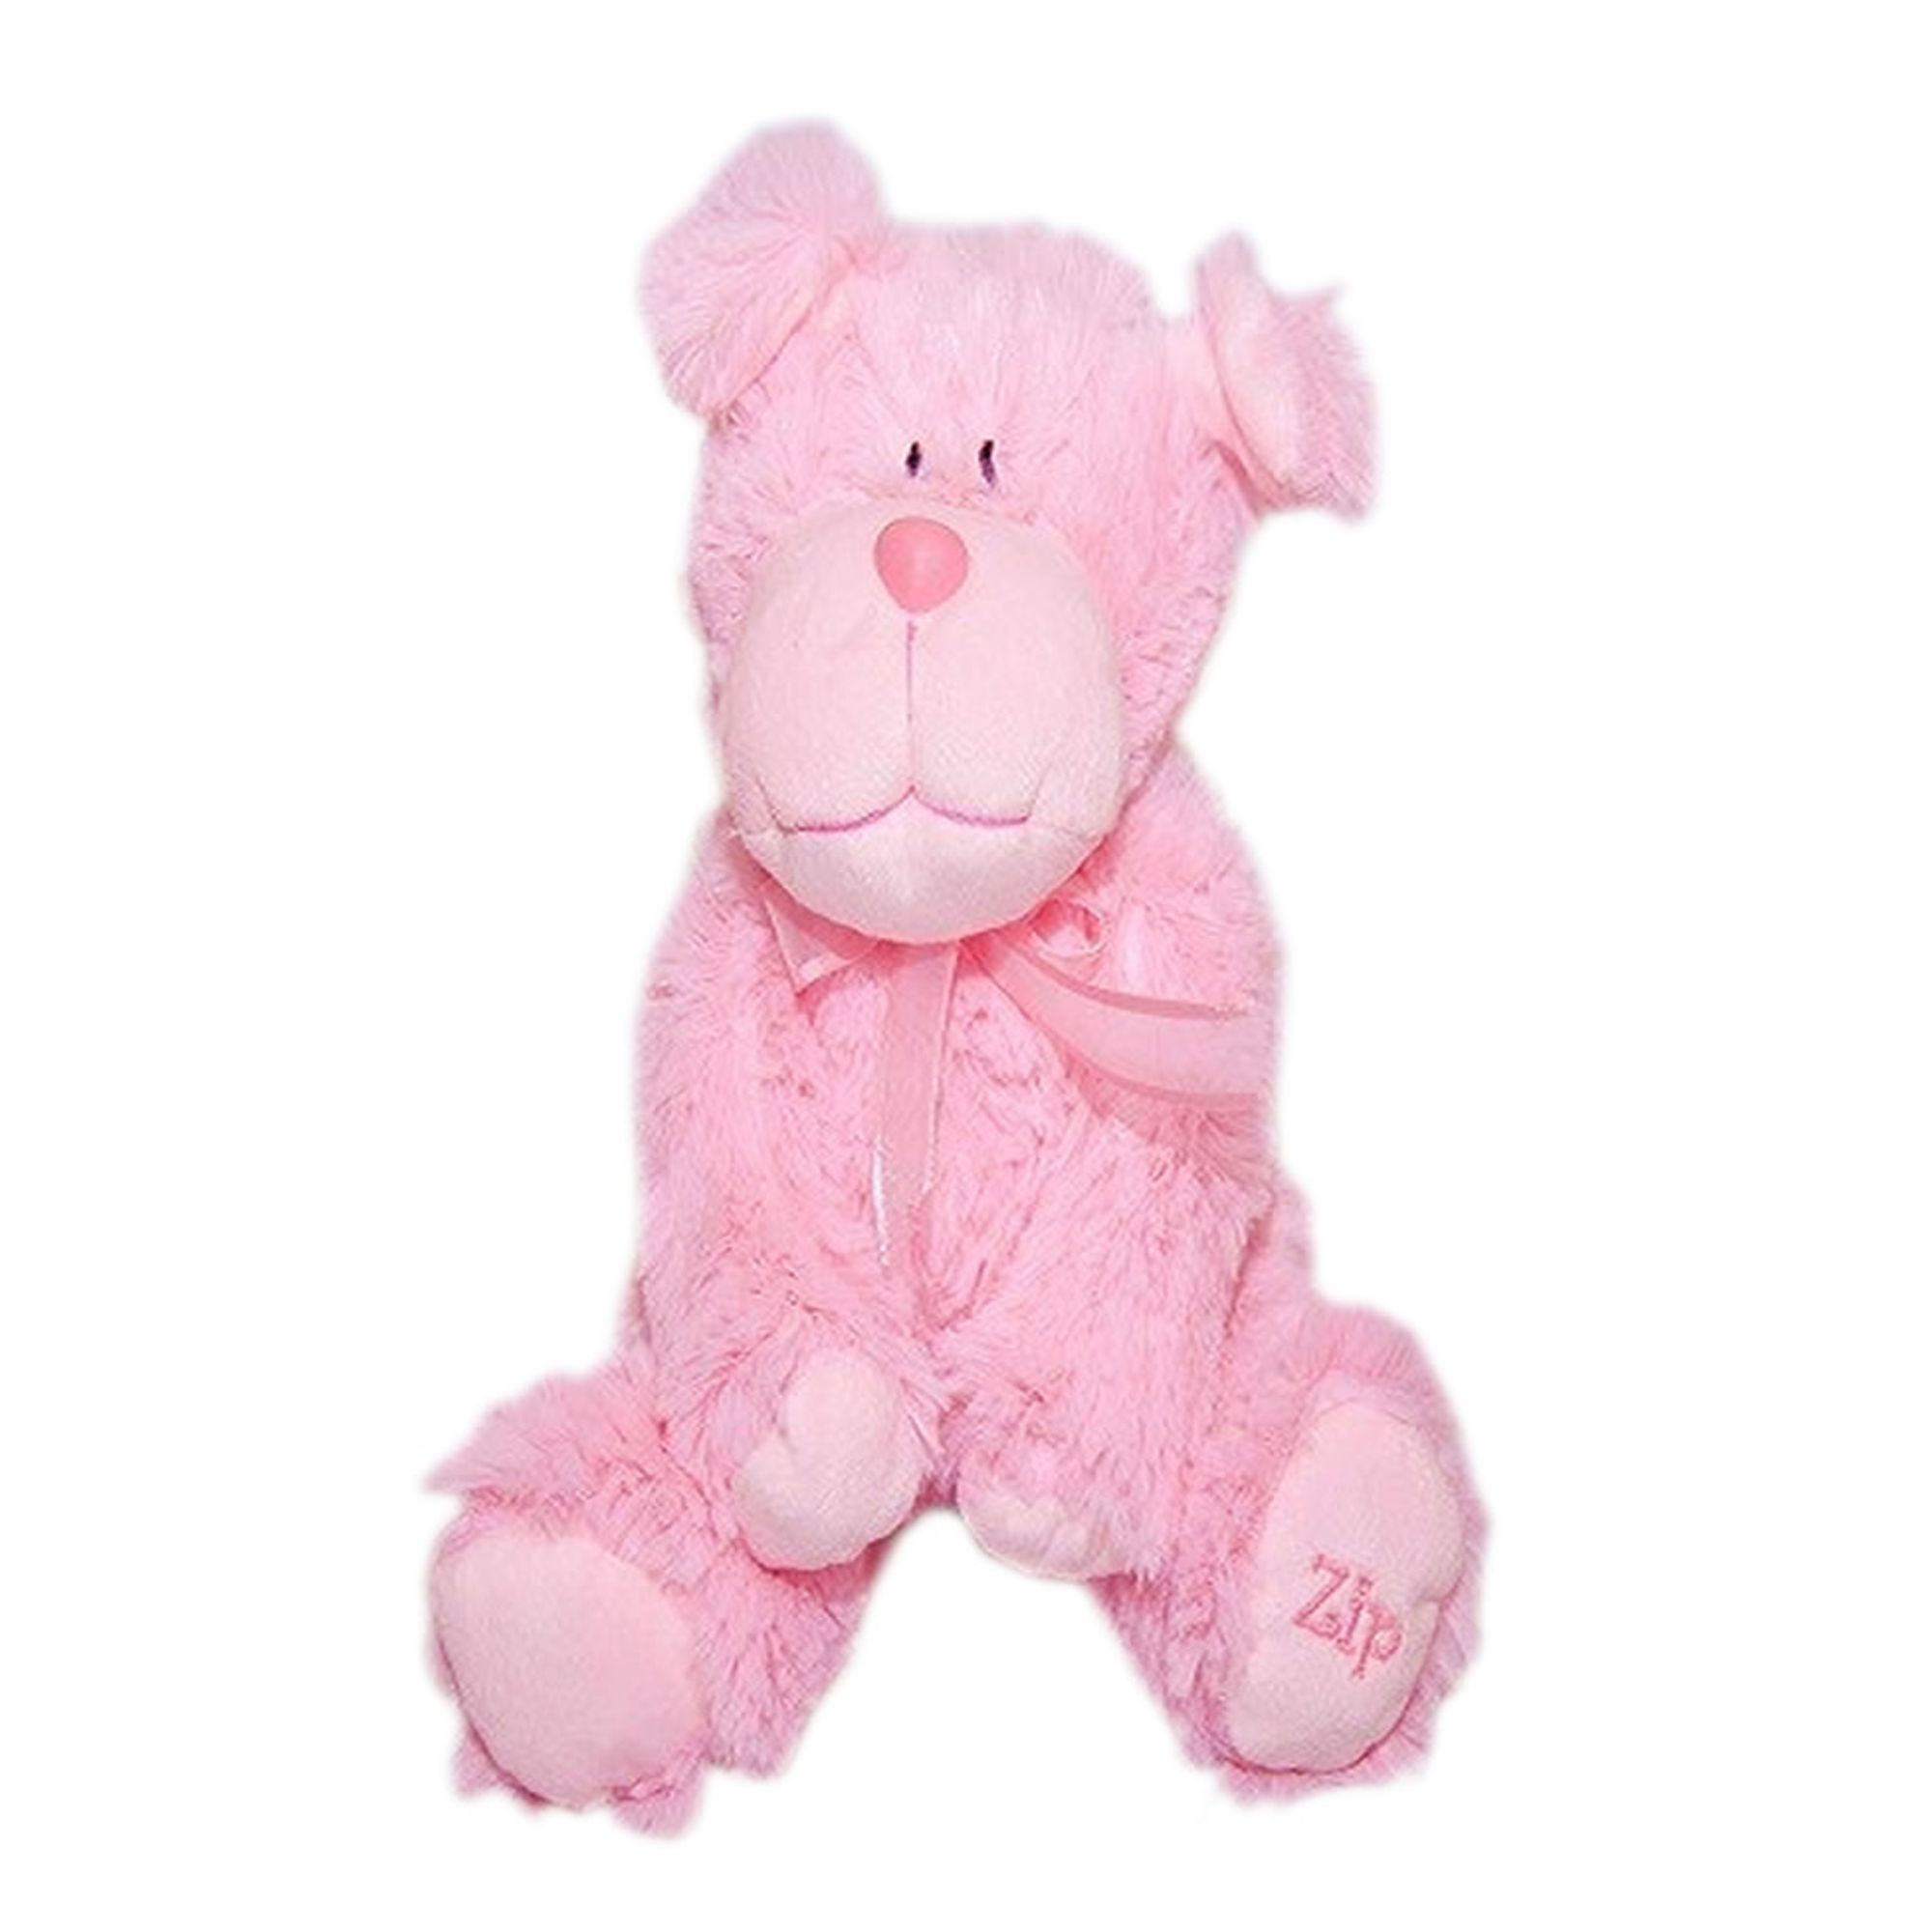 cachorrinho-pelucia-peteca-rosa-ziptoys